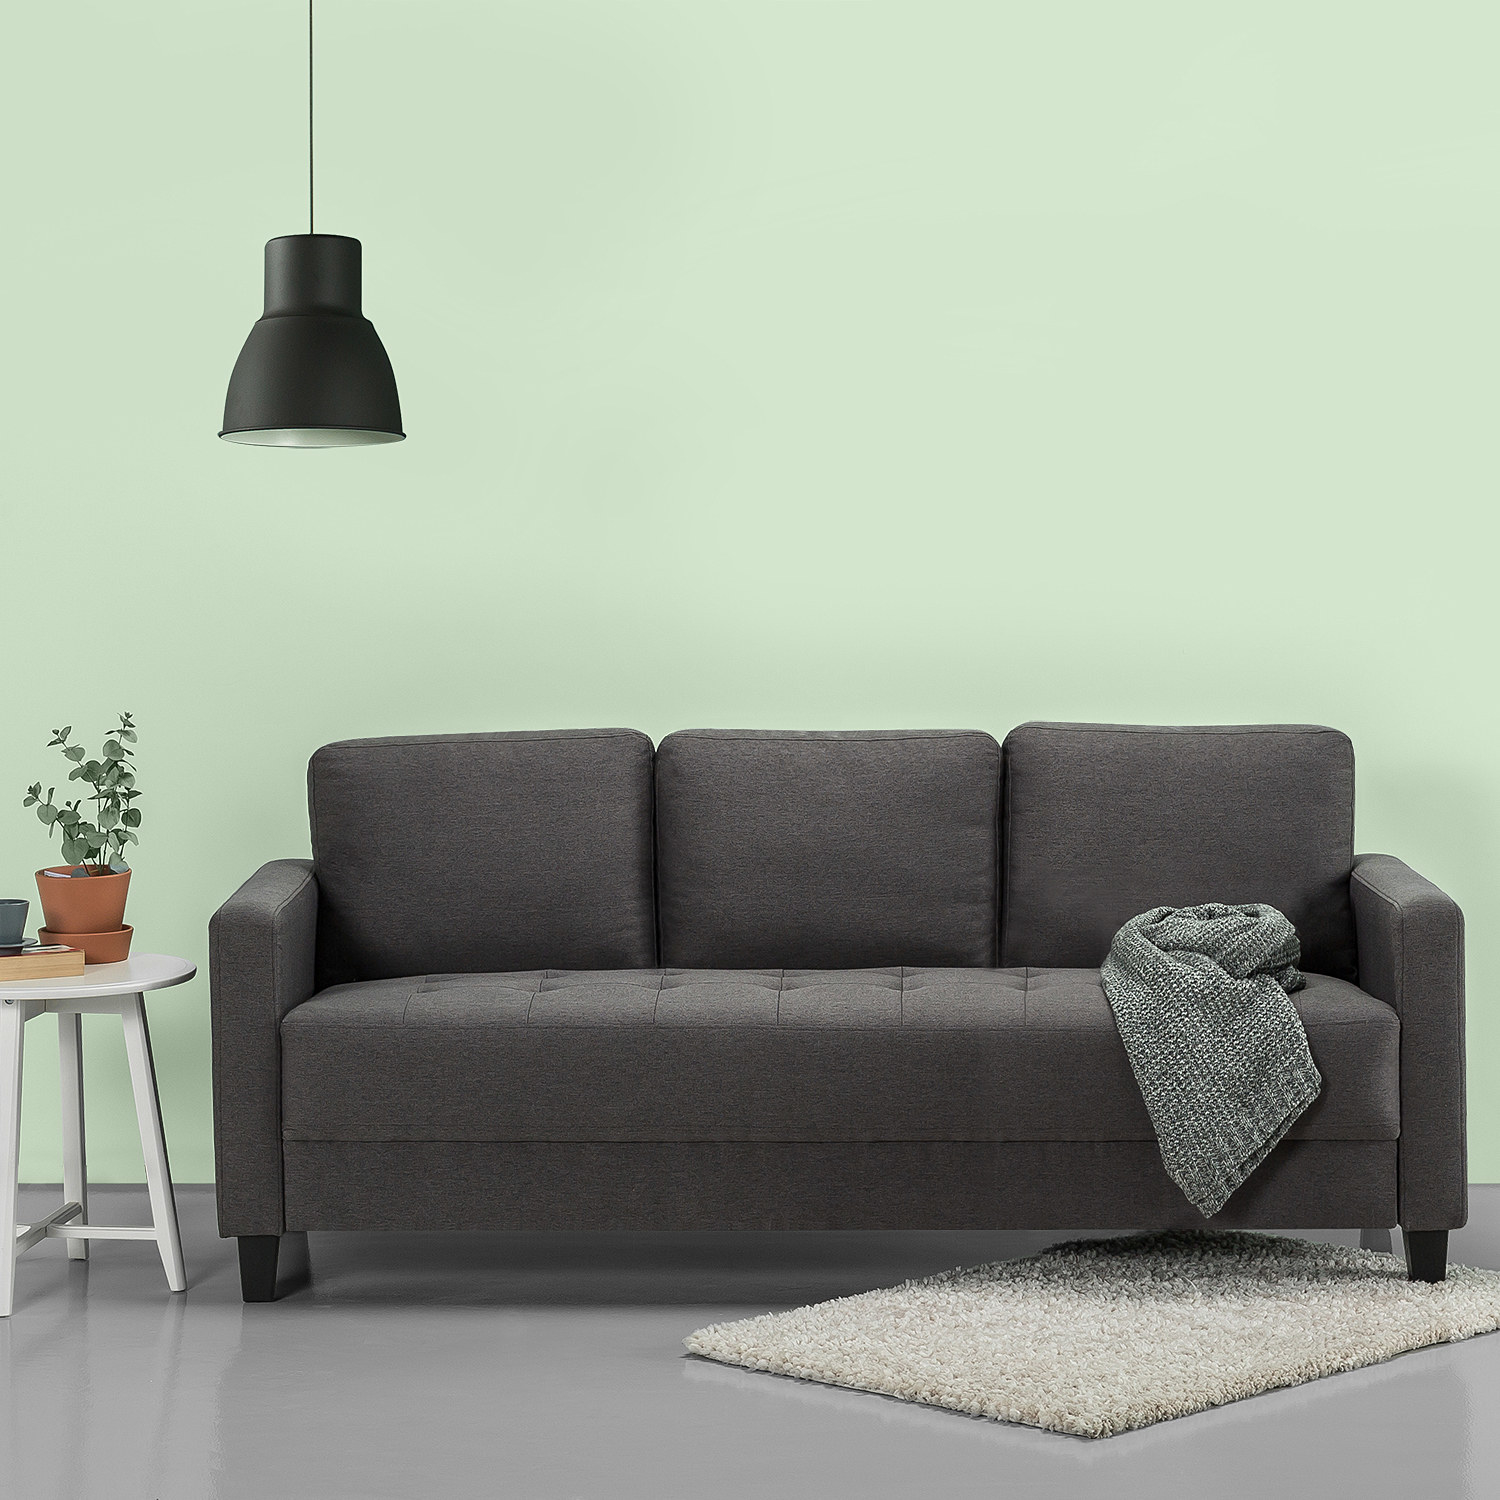 The sofa in dark grey with three seat-back cushions and tufted seat in a room